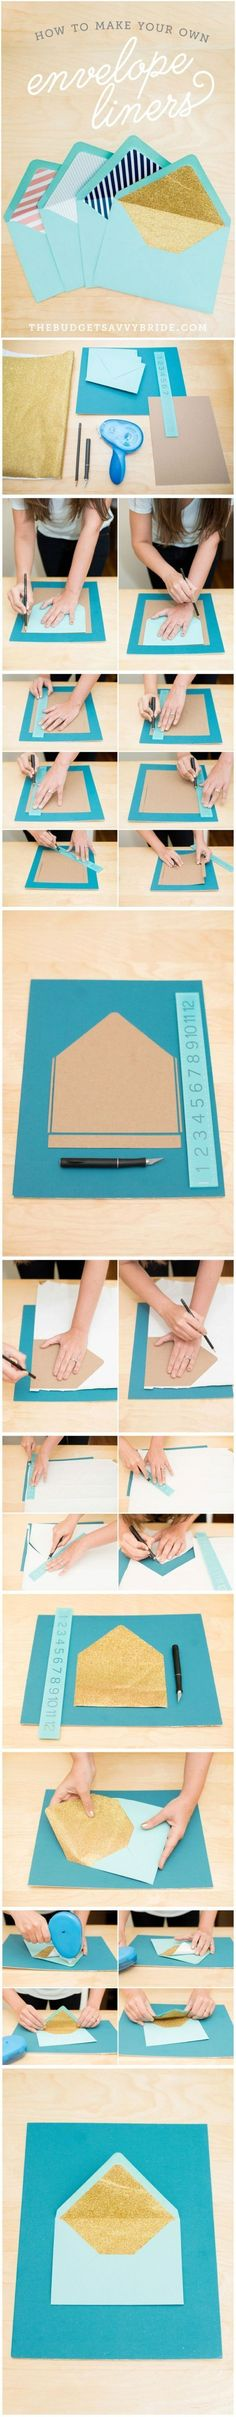 DIY envelope liners / http://www.himisspuff.com/diy-wedding-invitations/16/ #weddinginvitation